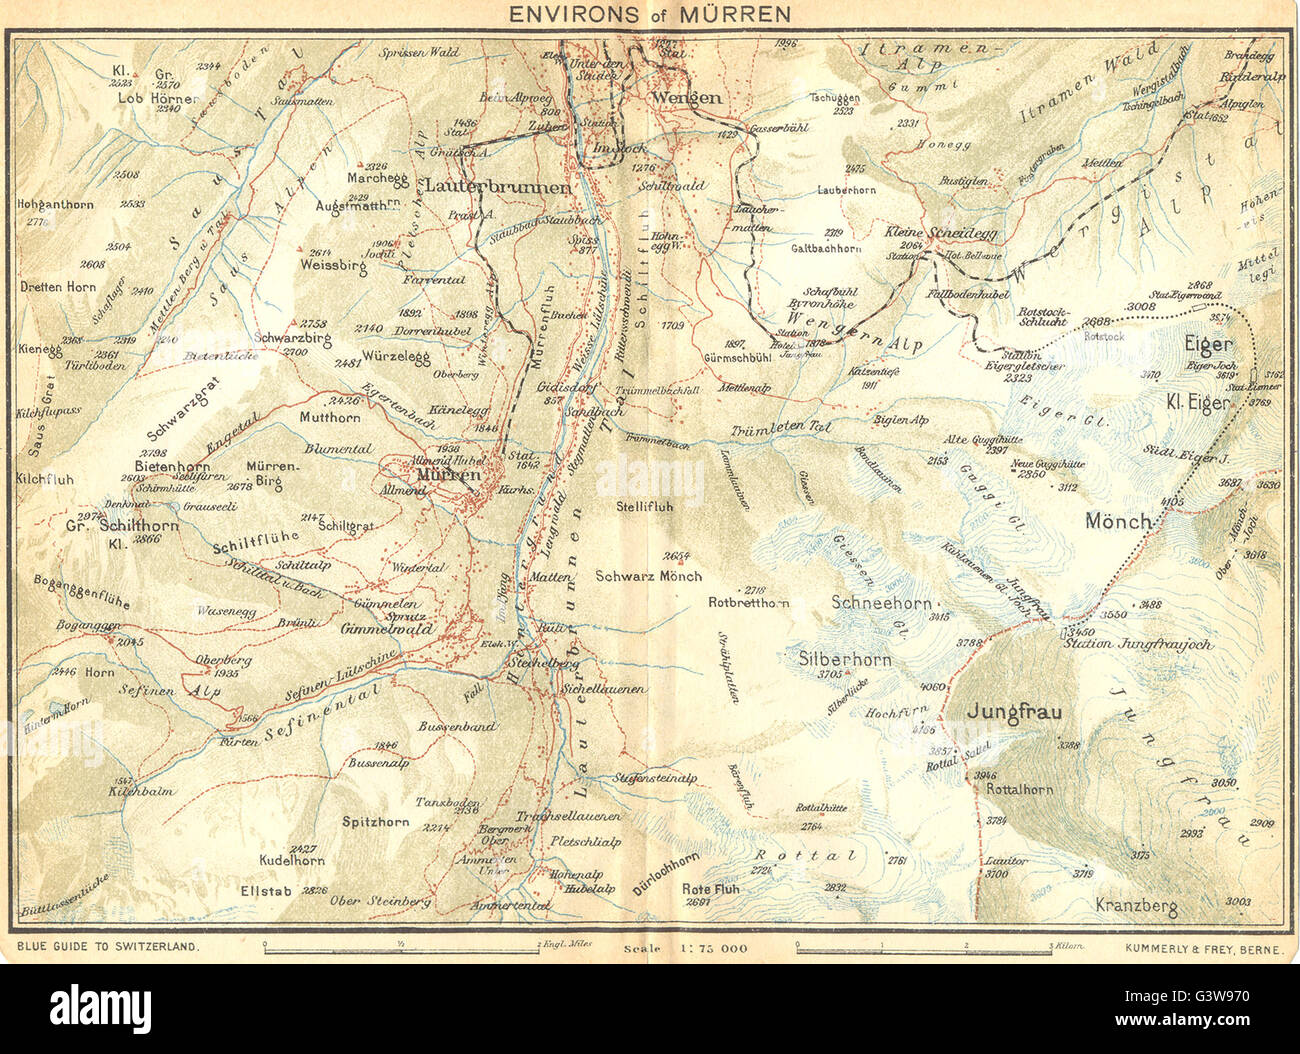 SWITZERLAND: Environs of Murren, 1930 vintage map - Stock Image